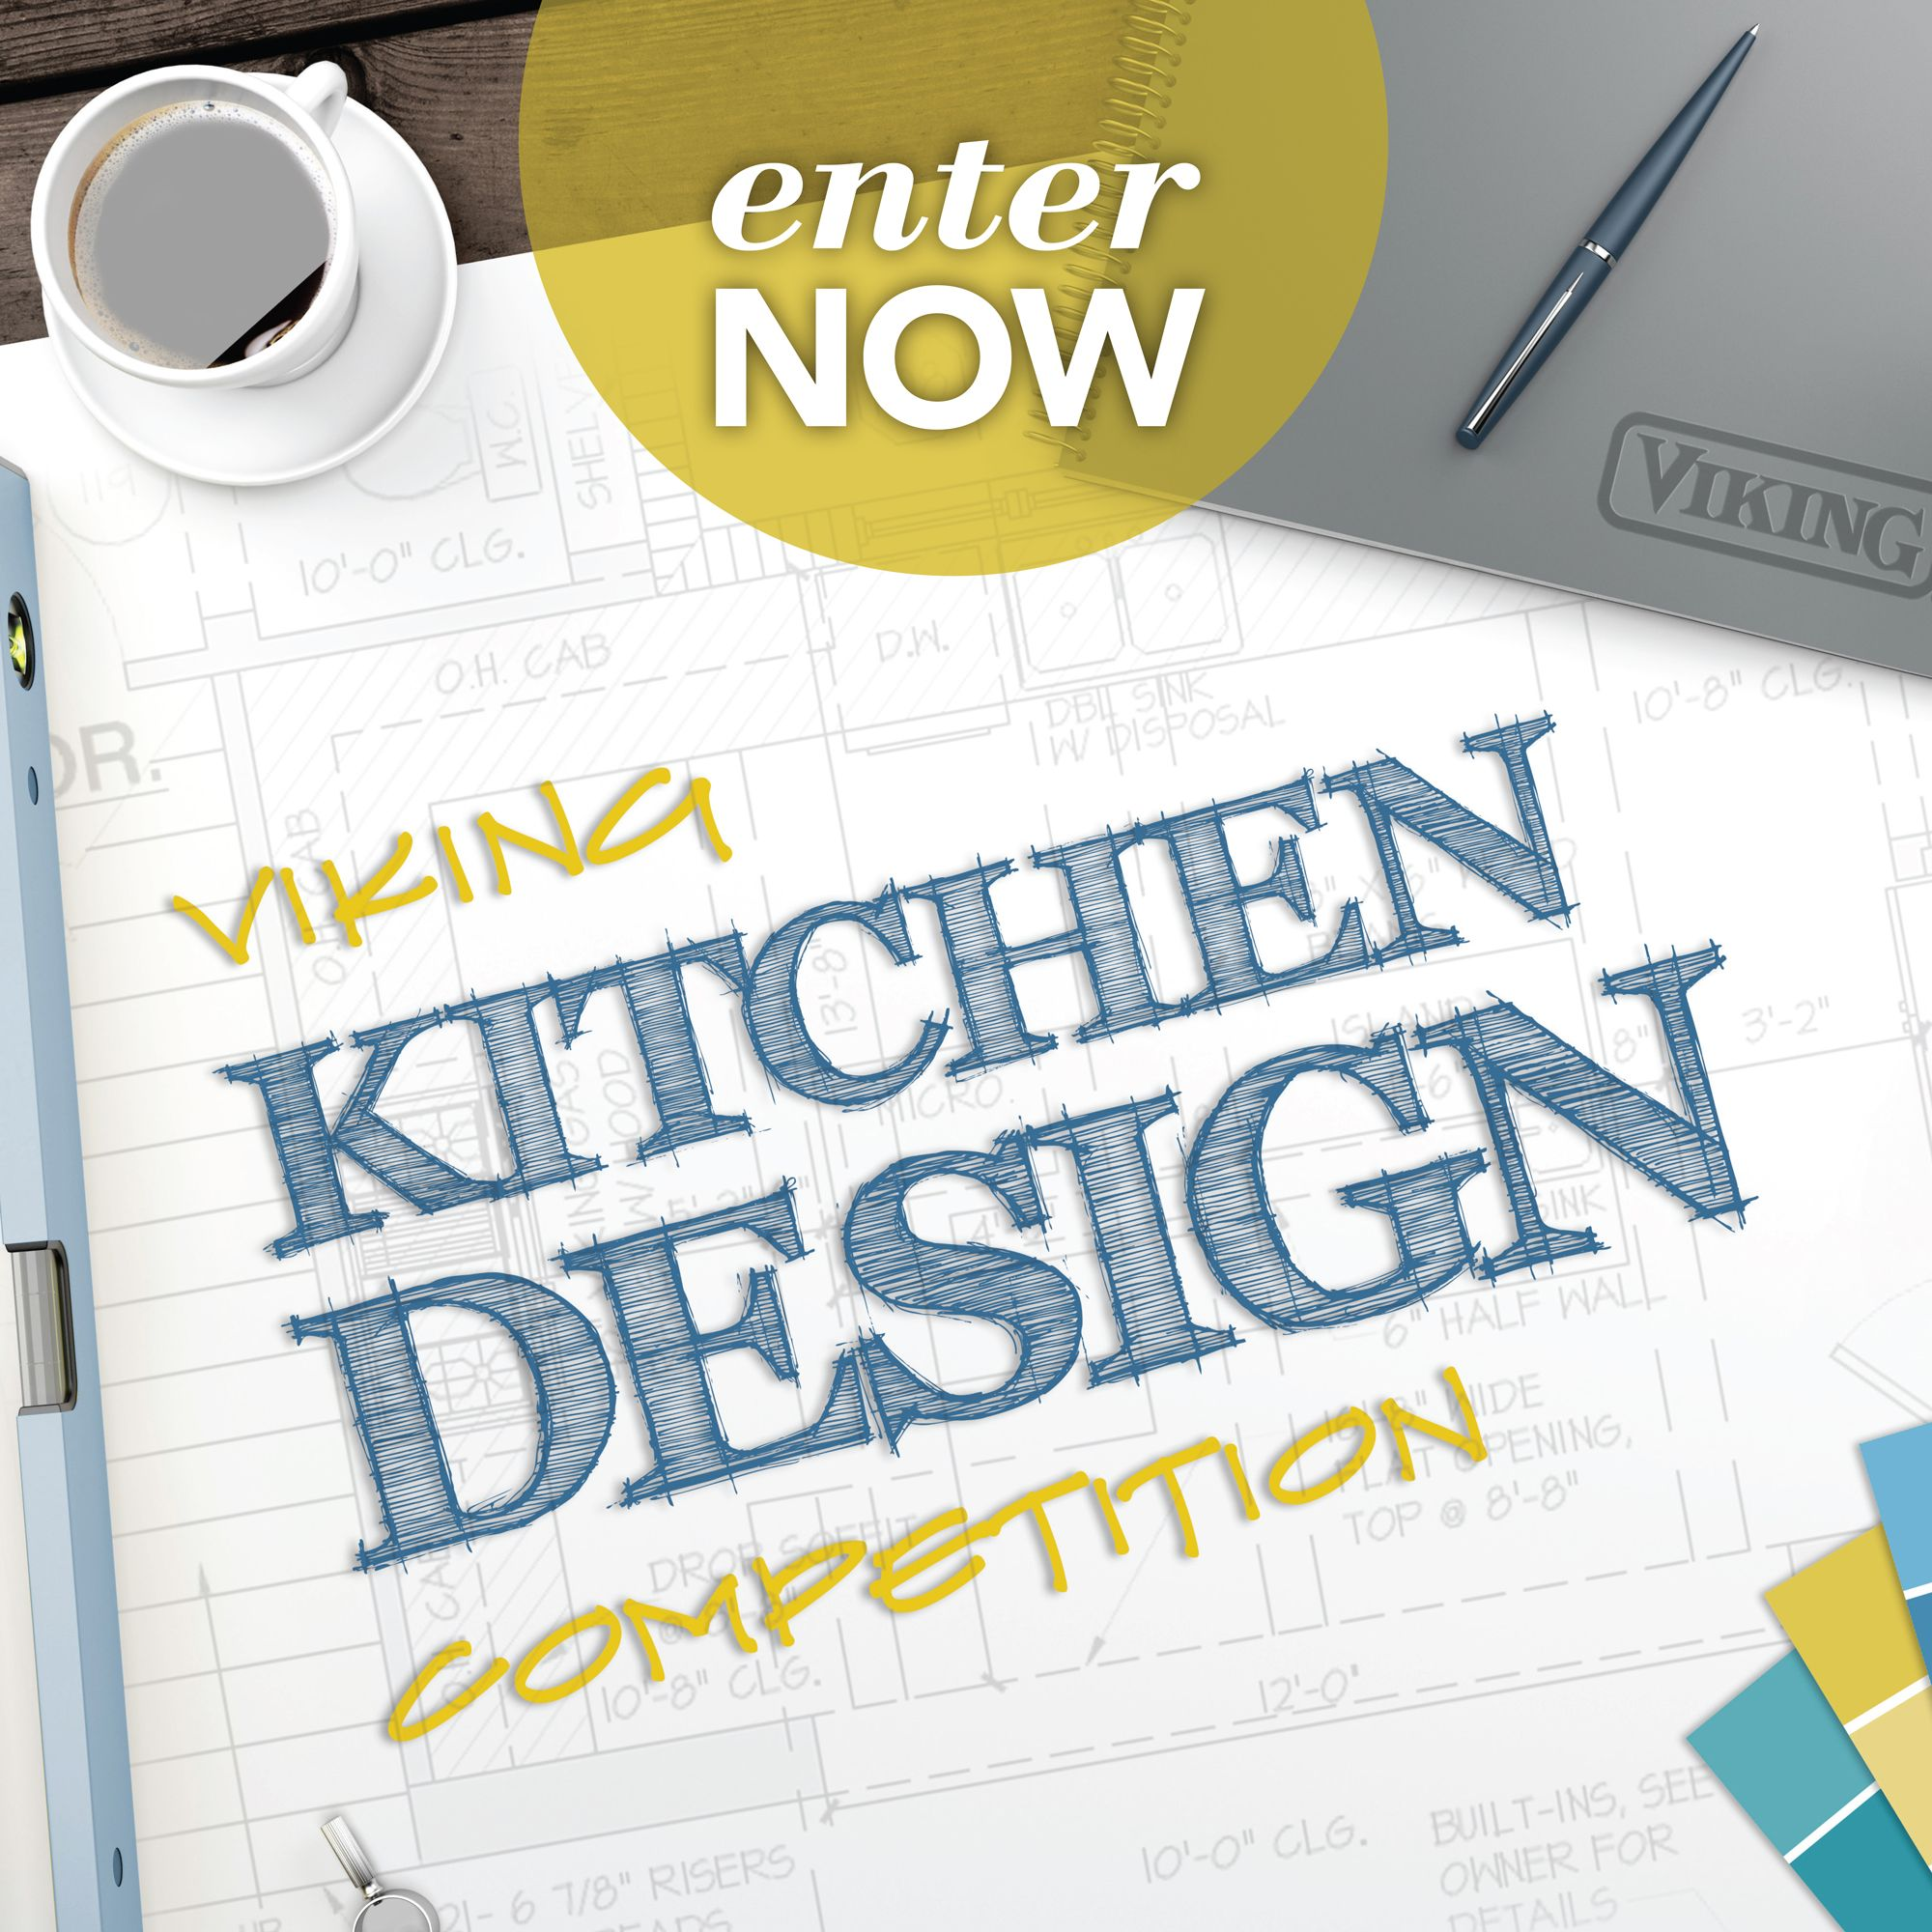 Viking Kitchen Design Contest at Monark Premium Appliance Costa Mesa CA